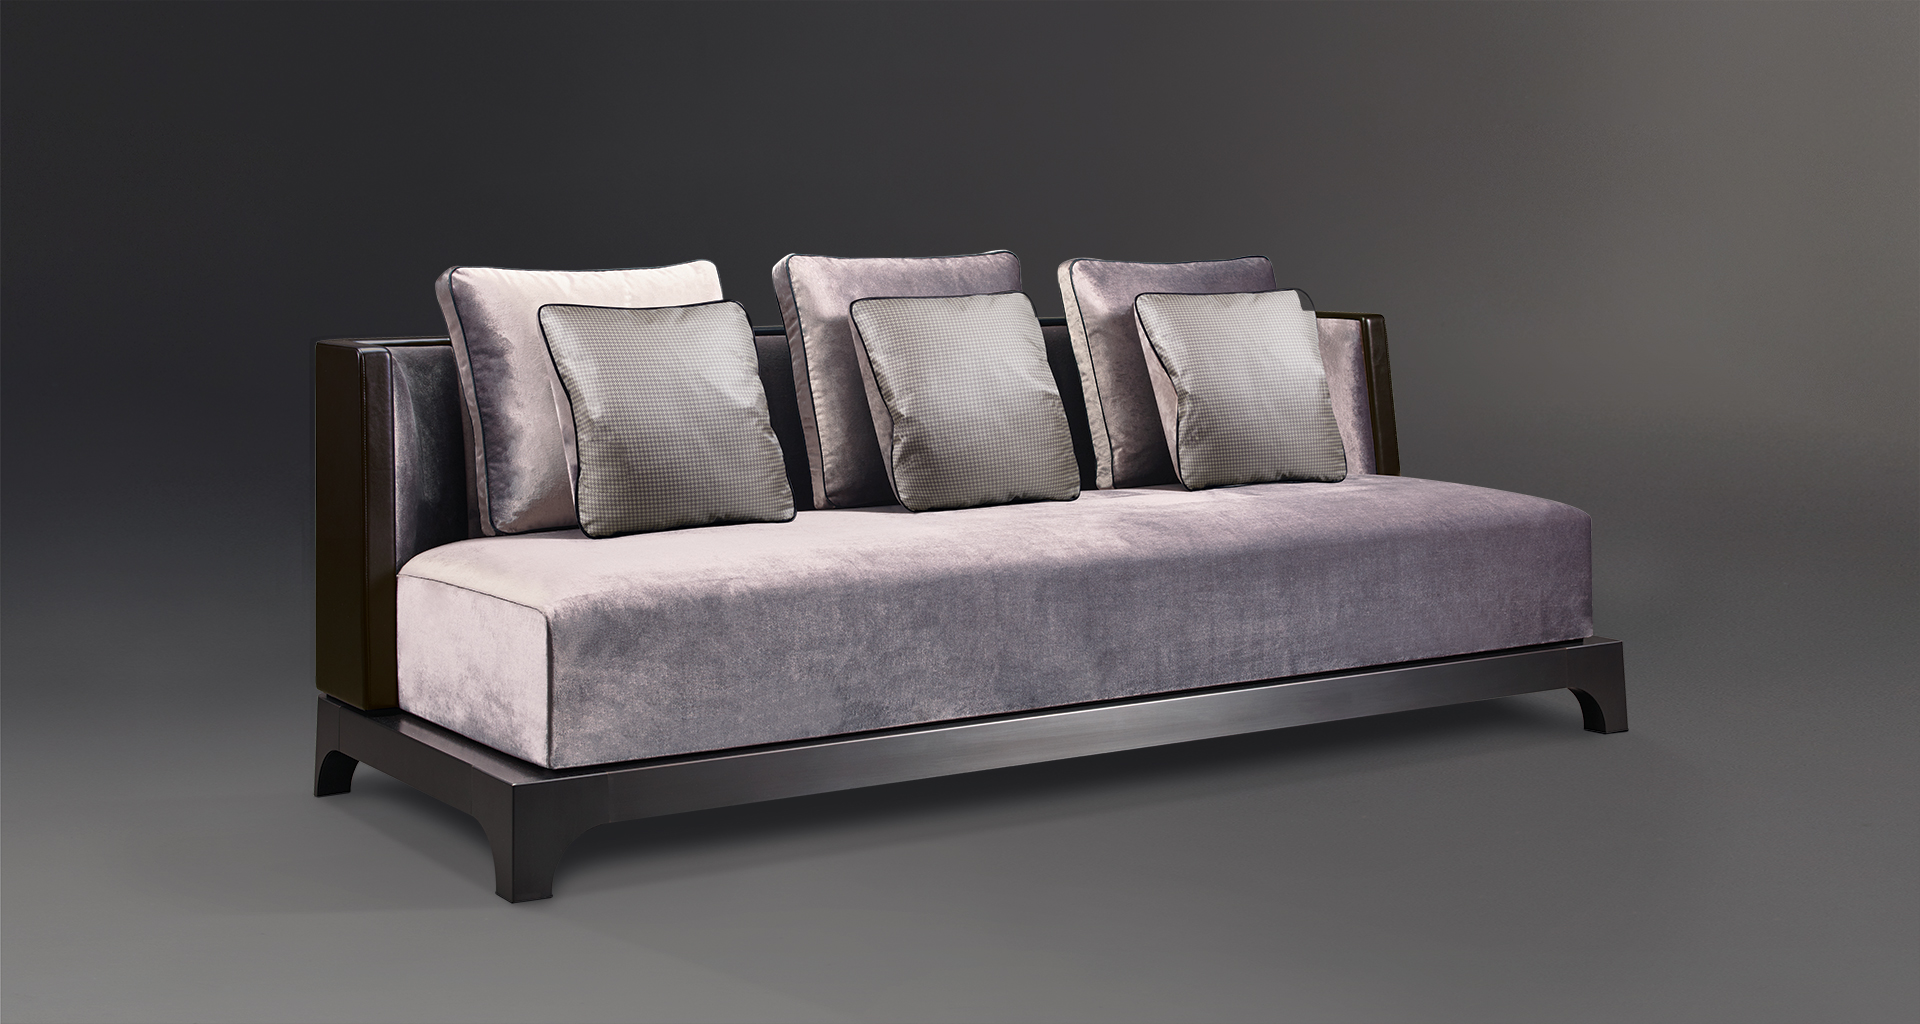 Eaton is a sofa with a wooden or bronze base covered in fabric, from Promemoria's The London Collection | Promemoria